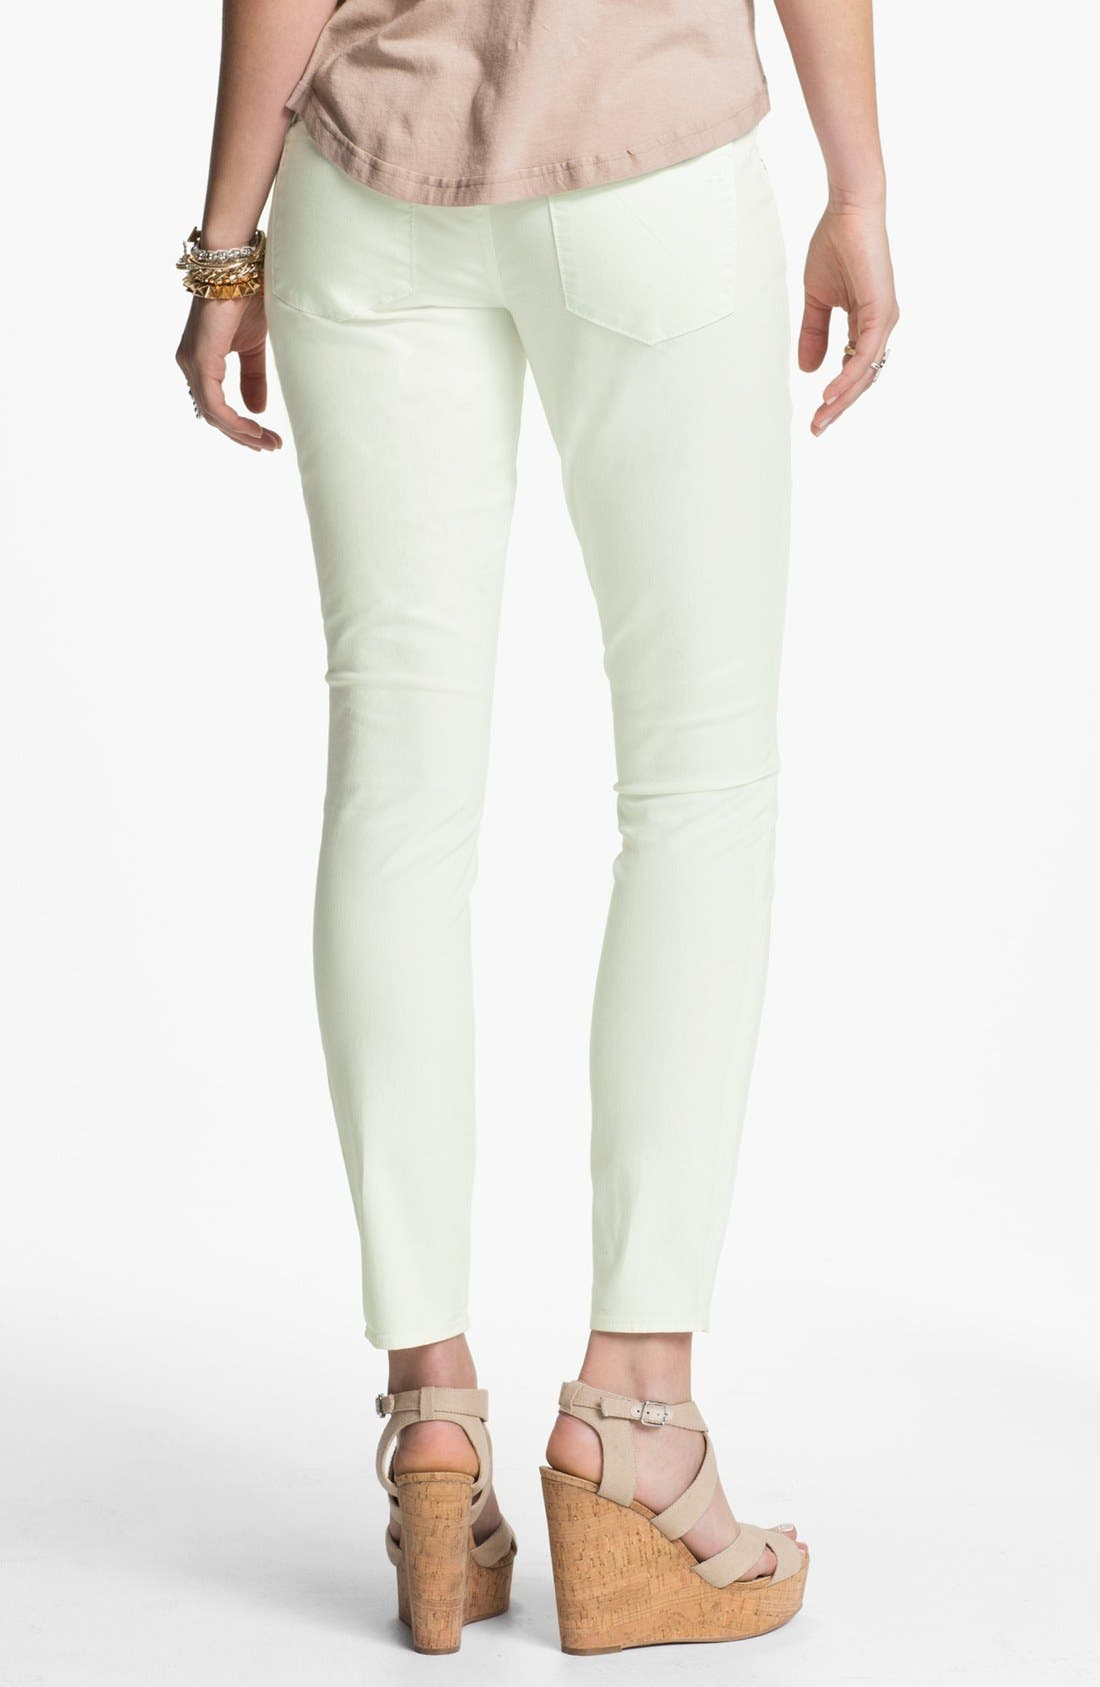 Main Image - Articles of Society 'Olivia' Skinny Pants (Mint) (Juniors) (Online Only)